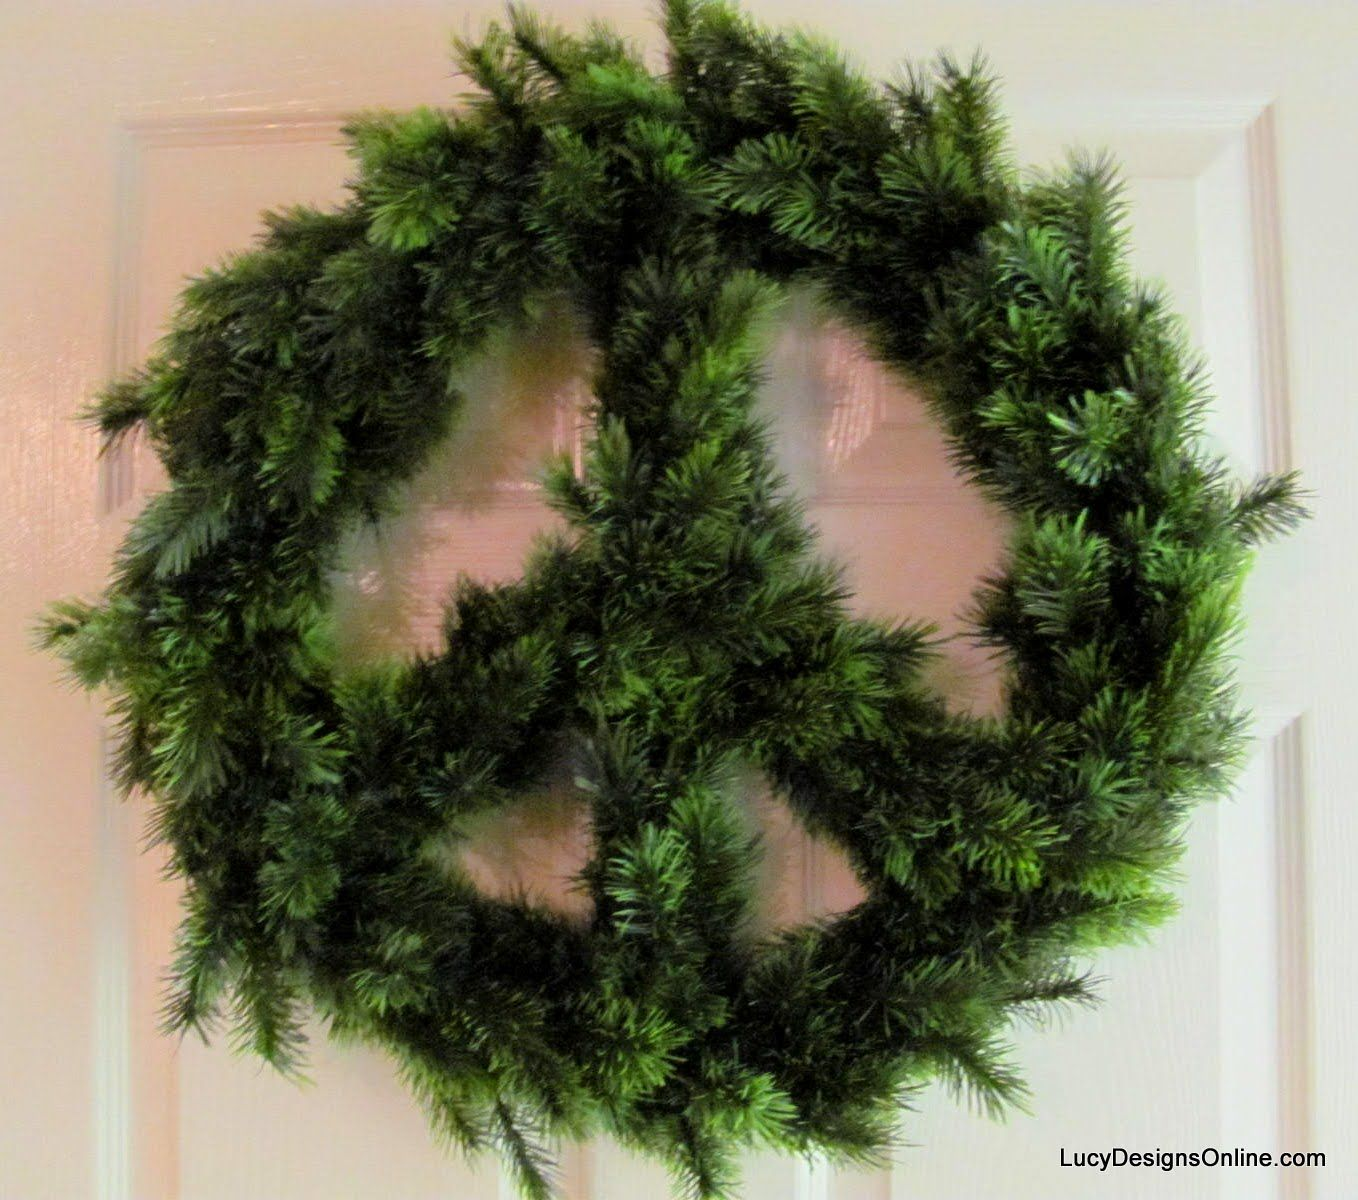 Diy Peace Sign Christmas Wreath Using Garland Lucy